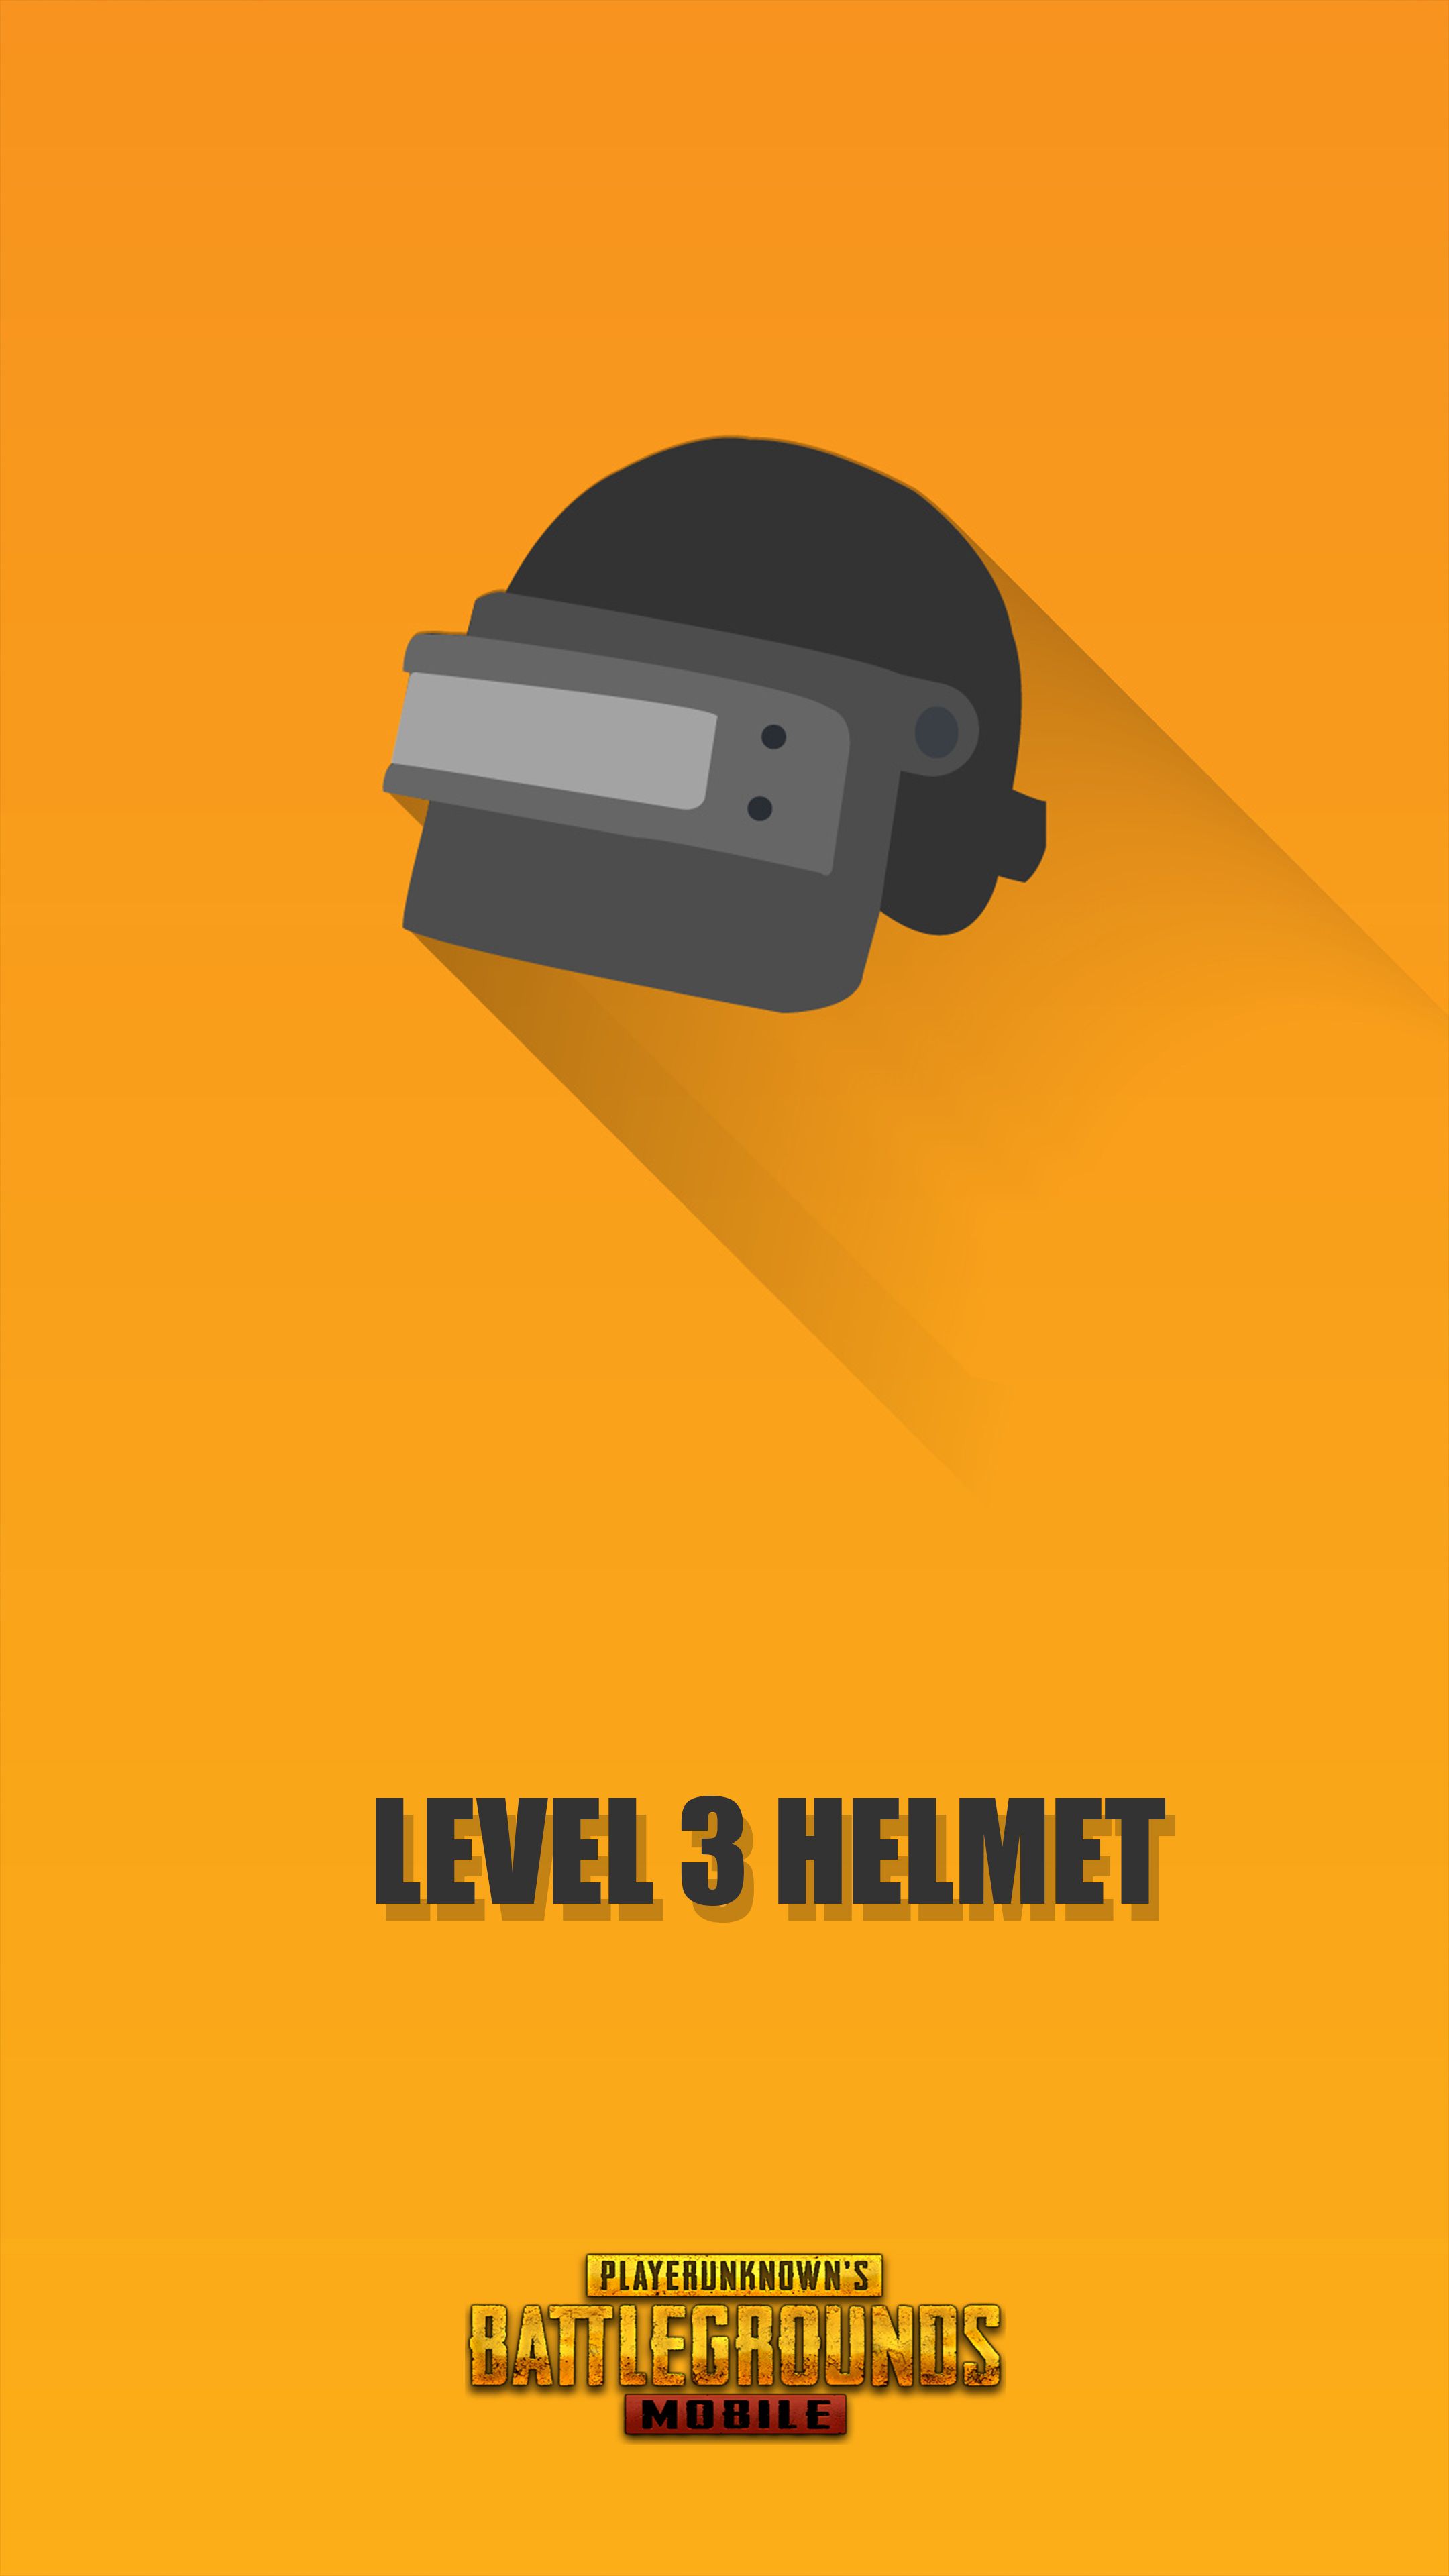 Download Pubg Mobile Helmet Level 3 Minimal Free Pure 4k Ultra Hd